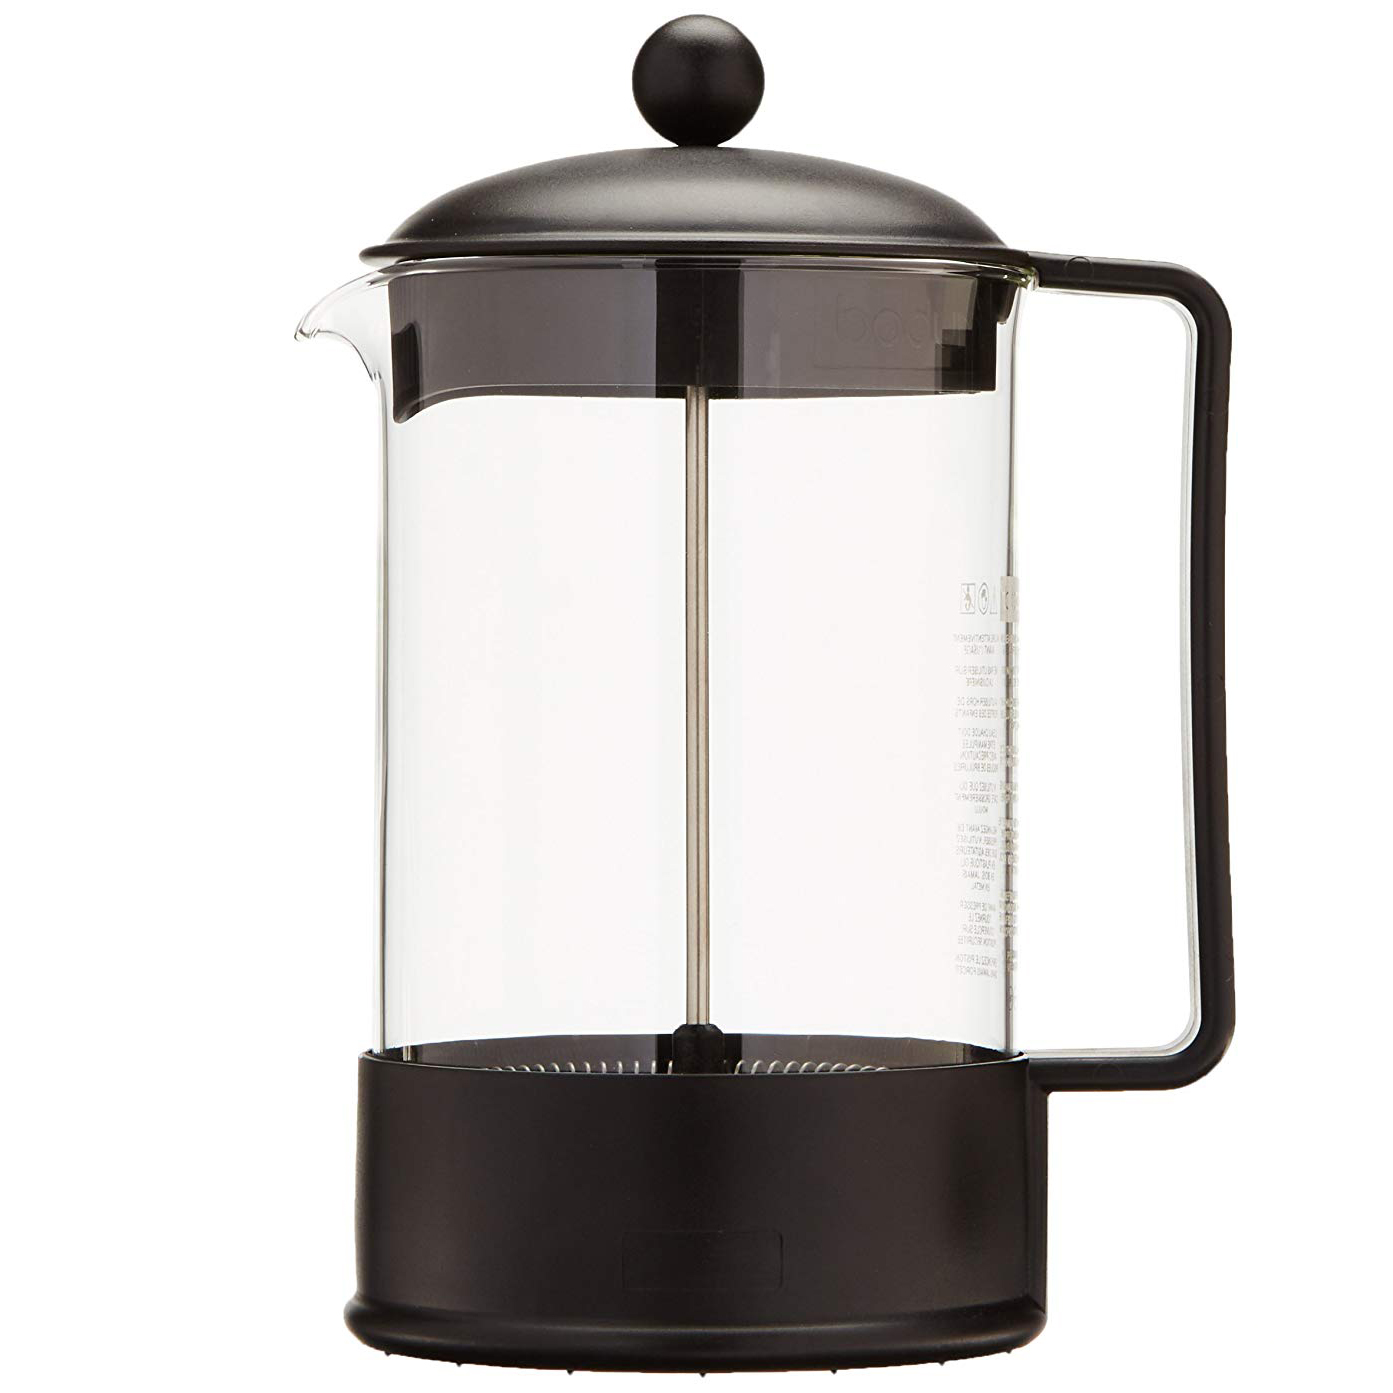 Bodum Brazil 12 Cup French Press Coffee Maker 15l 51oz Espresso